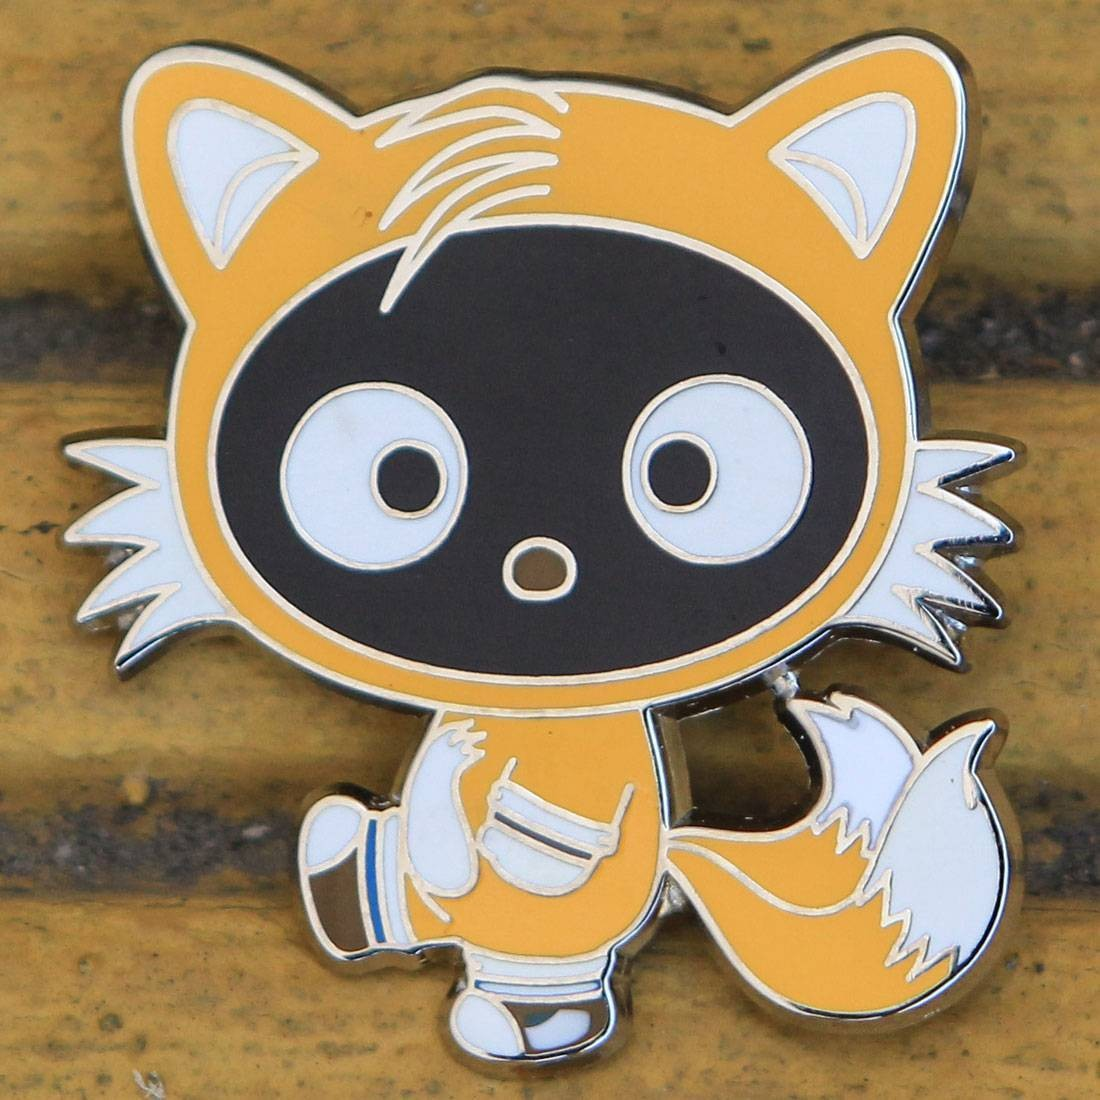 BAIT x Sanrio x Sonic Yellow Chococat Pin (yellow)